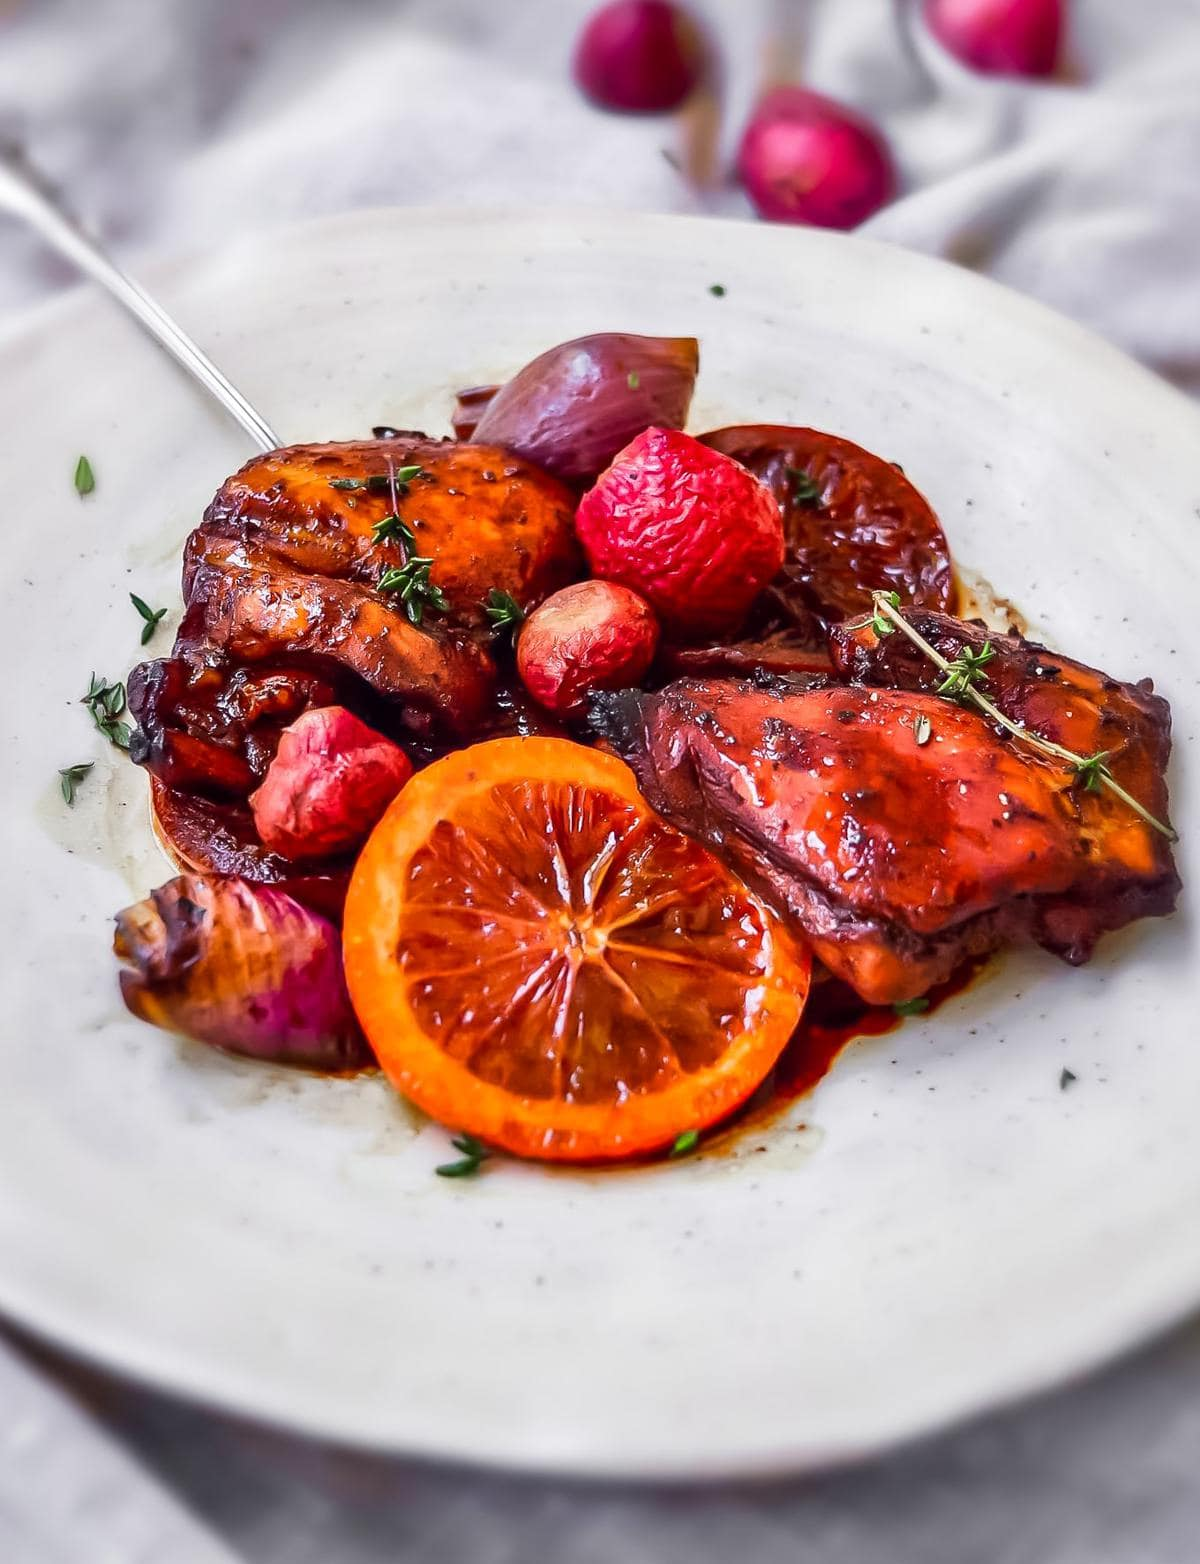 Balsamic Glazed Chicken with blood orange